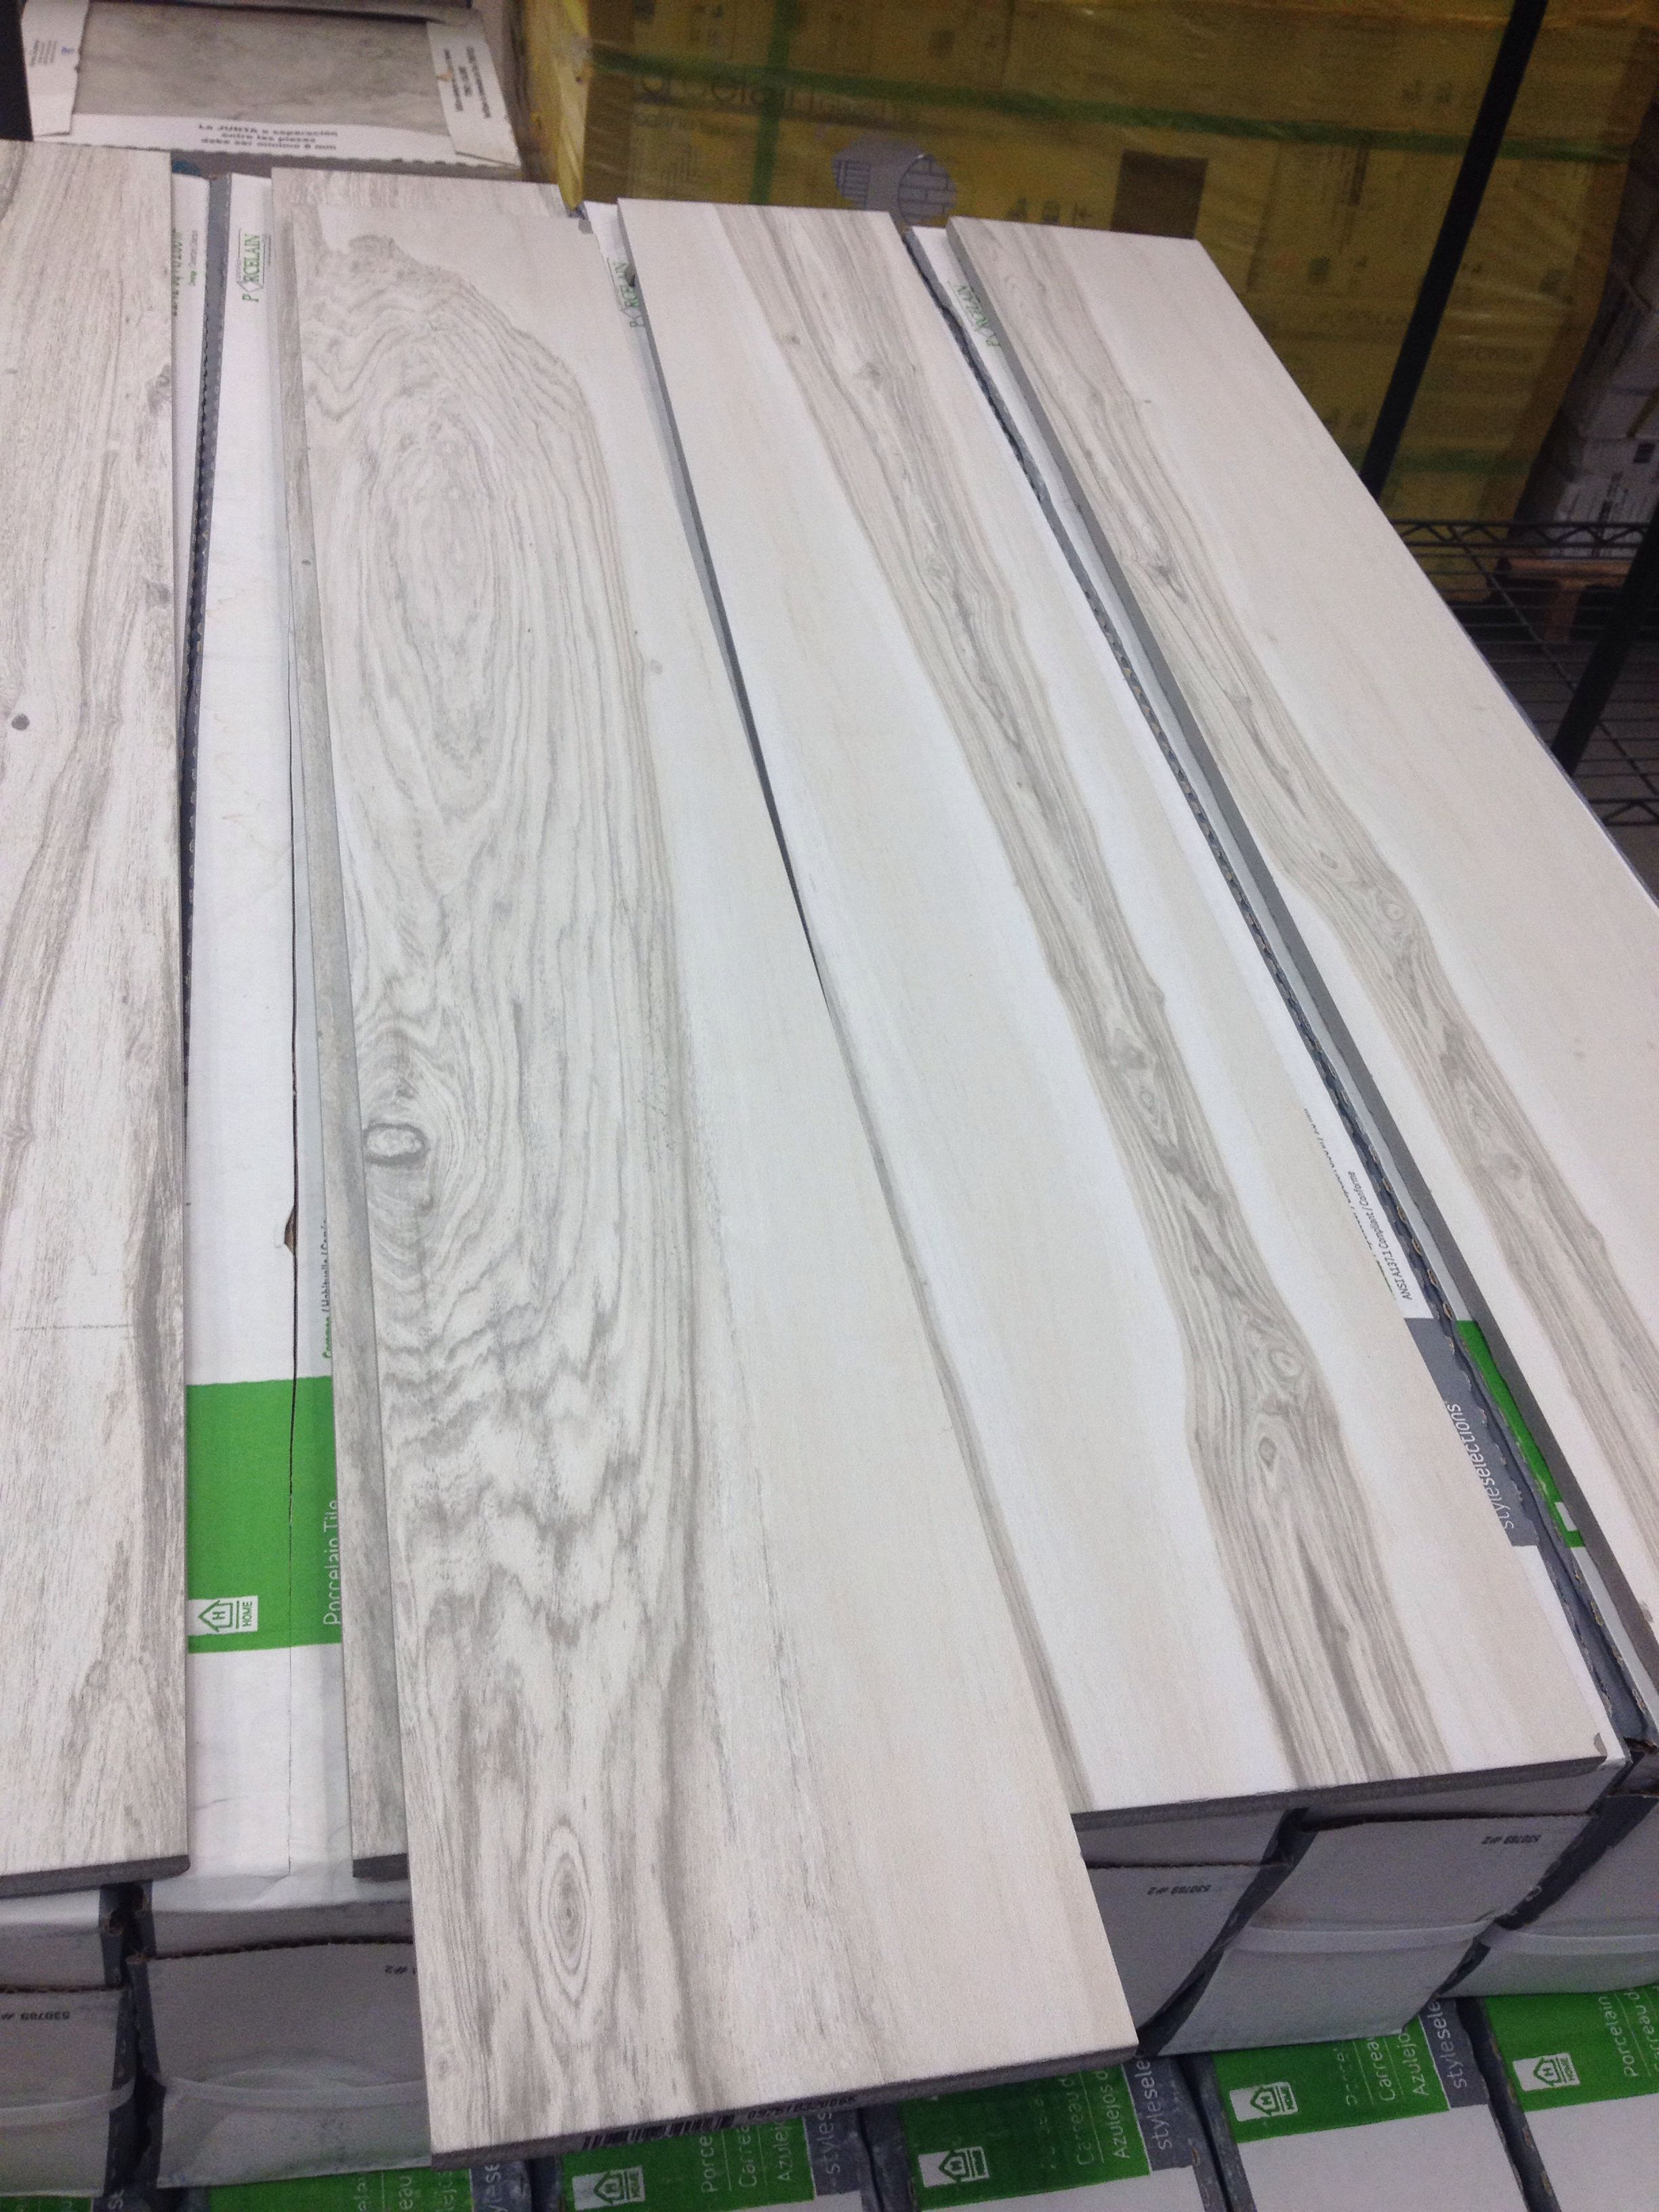 Lowes White wash ceramic tiles Tiles Pinterest